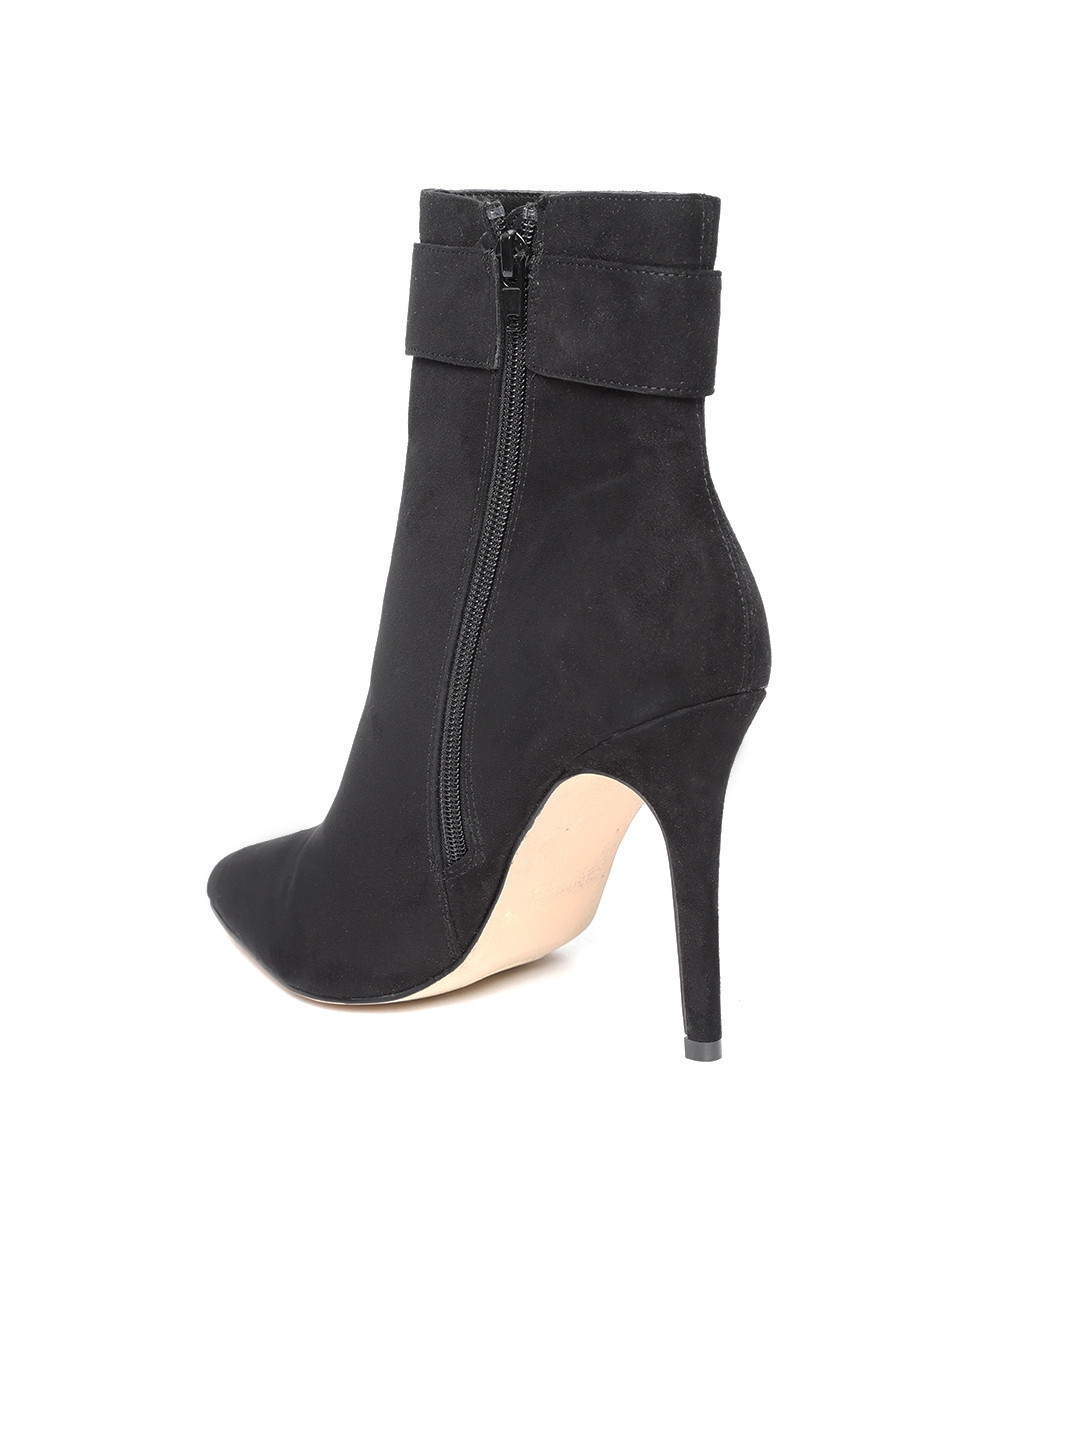 d08f8b58a1f9 Buy FOREVER 21 Women Black Solid Mid Top Heeled Boots - Heels for ...